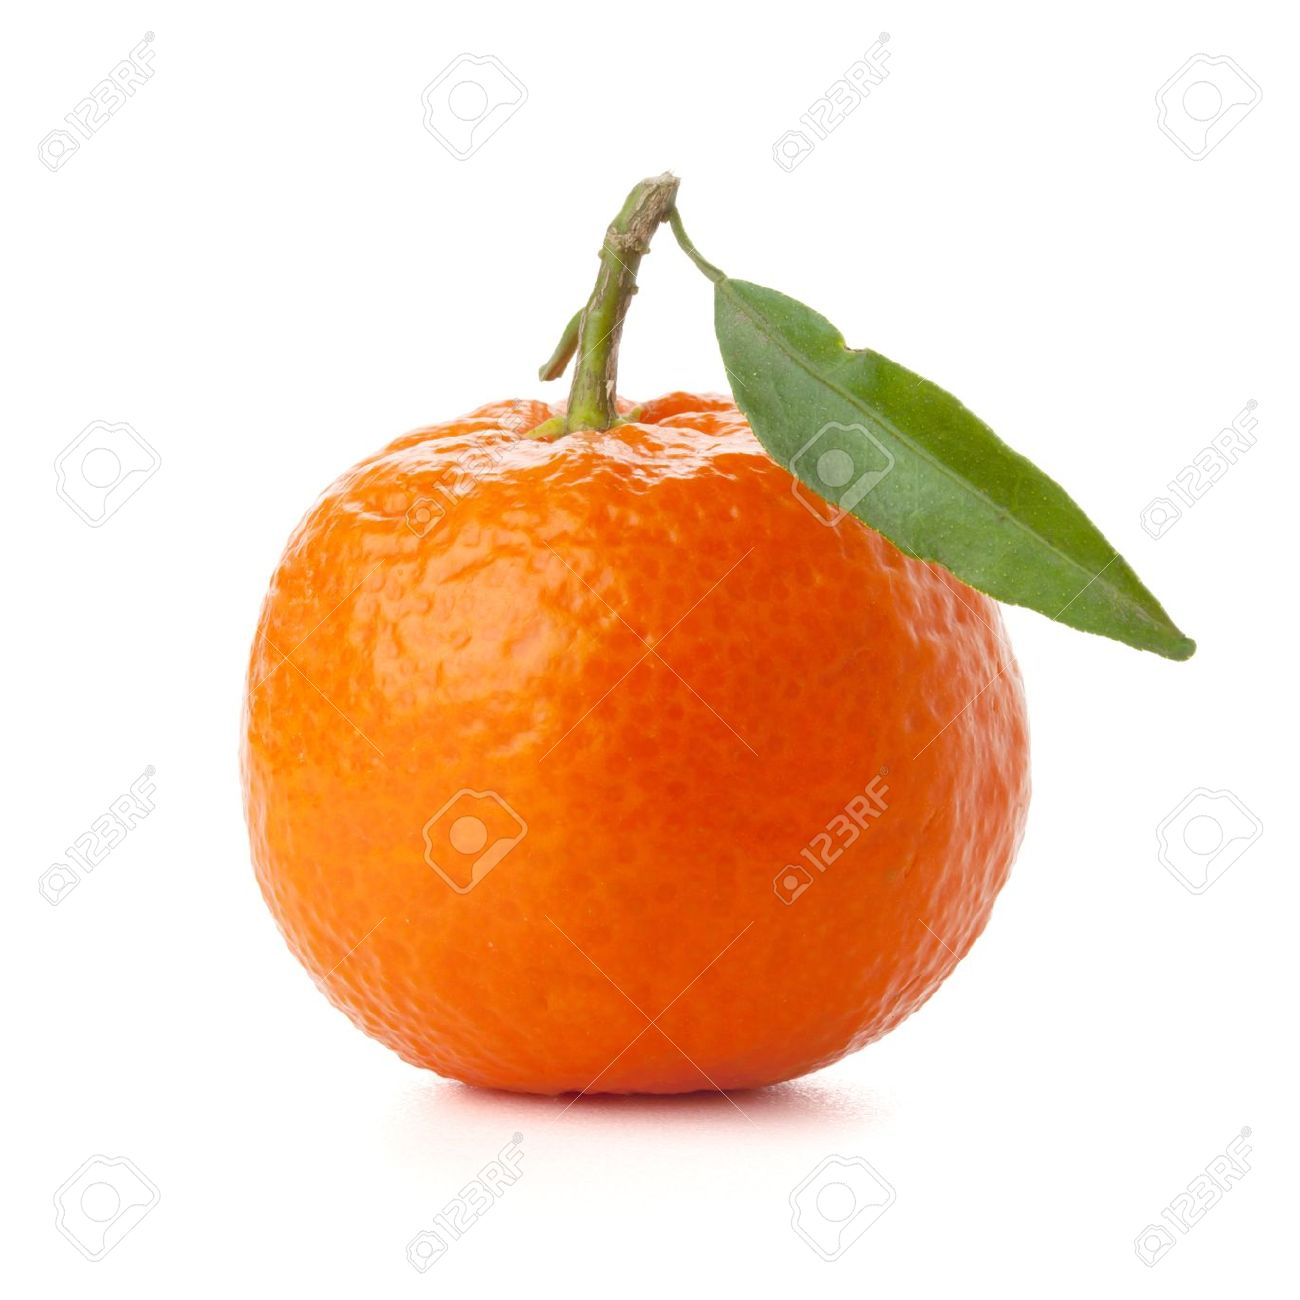 Ripe tangerine with green leaf. Isolated on white - 9797452